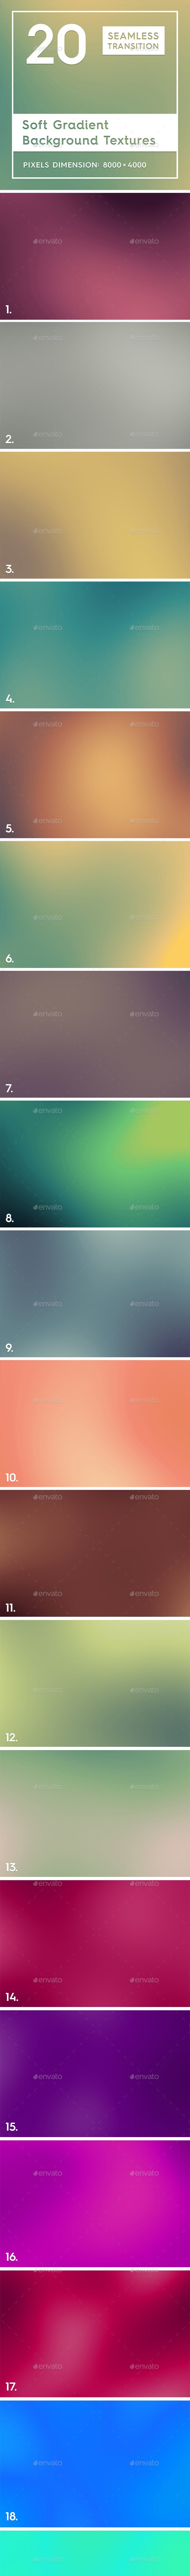 20 Soft Gradient Background Textures - 3DOcean Item for Sale